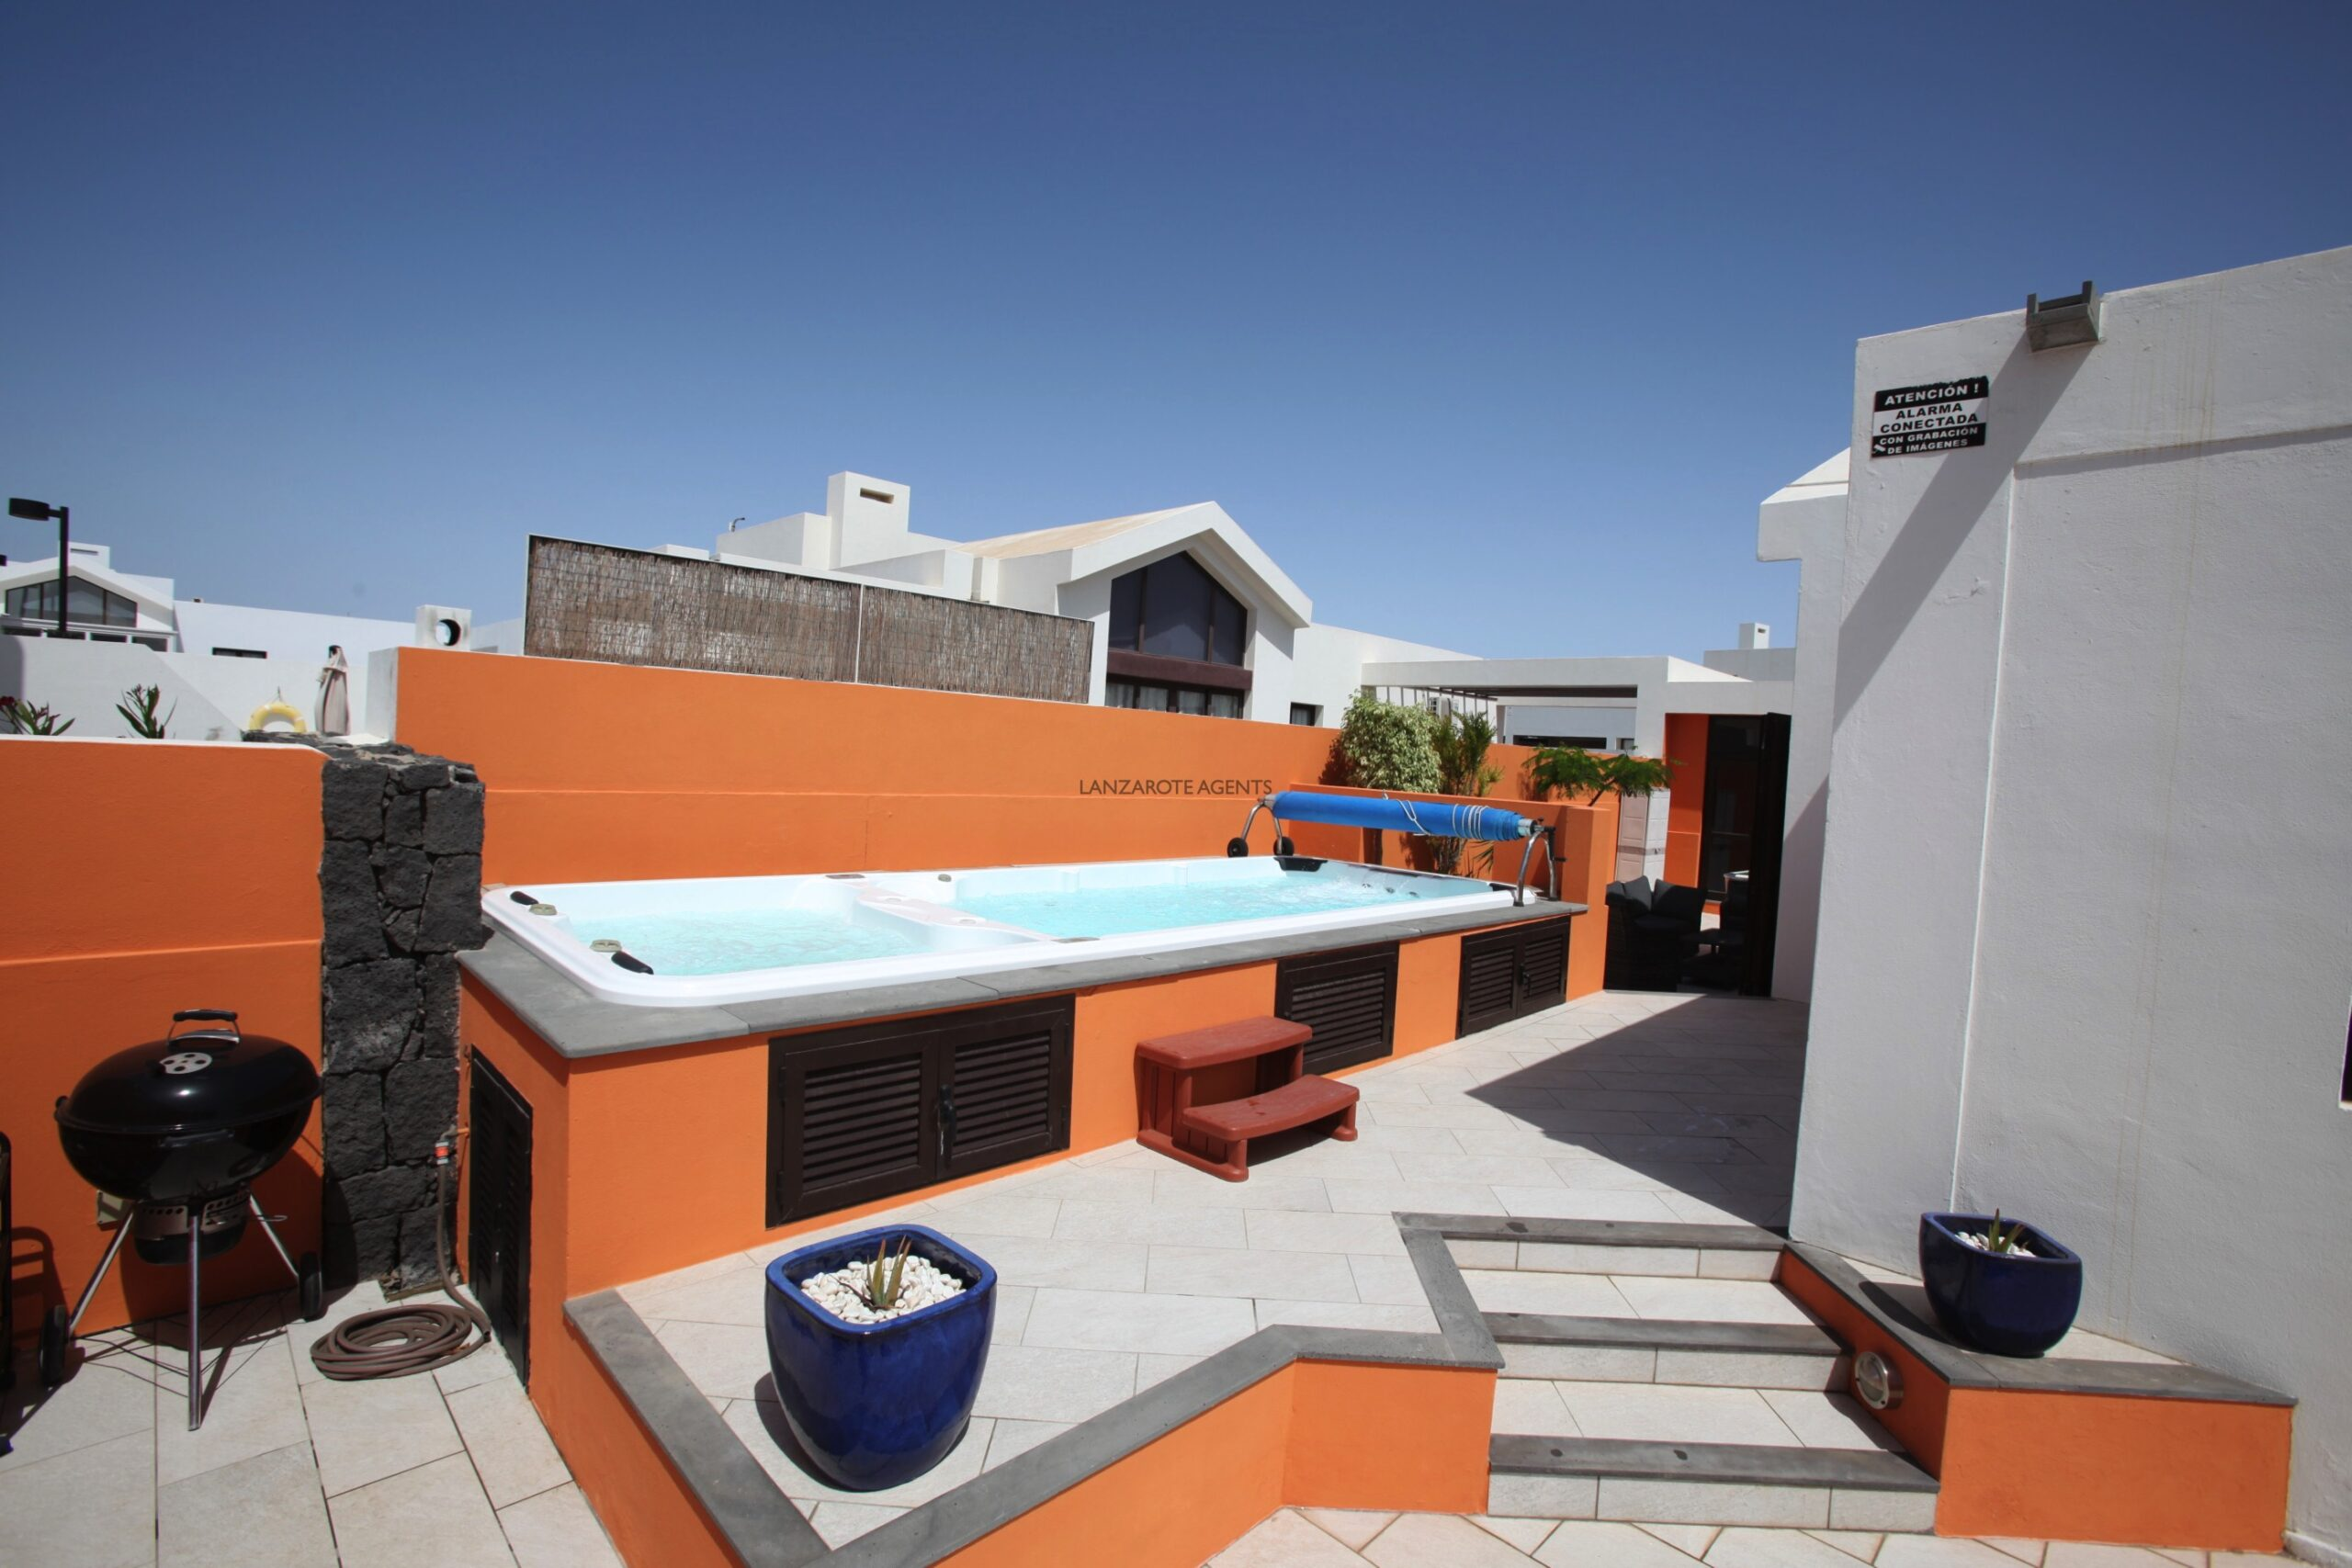 Fabulous 3 Bedroom Semi Detached Villa near Town Centre with Massive Hot Tub/ Pool and Rental Bookings